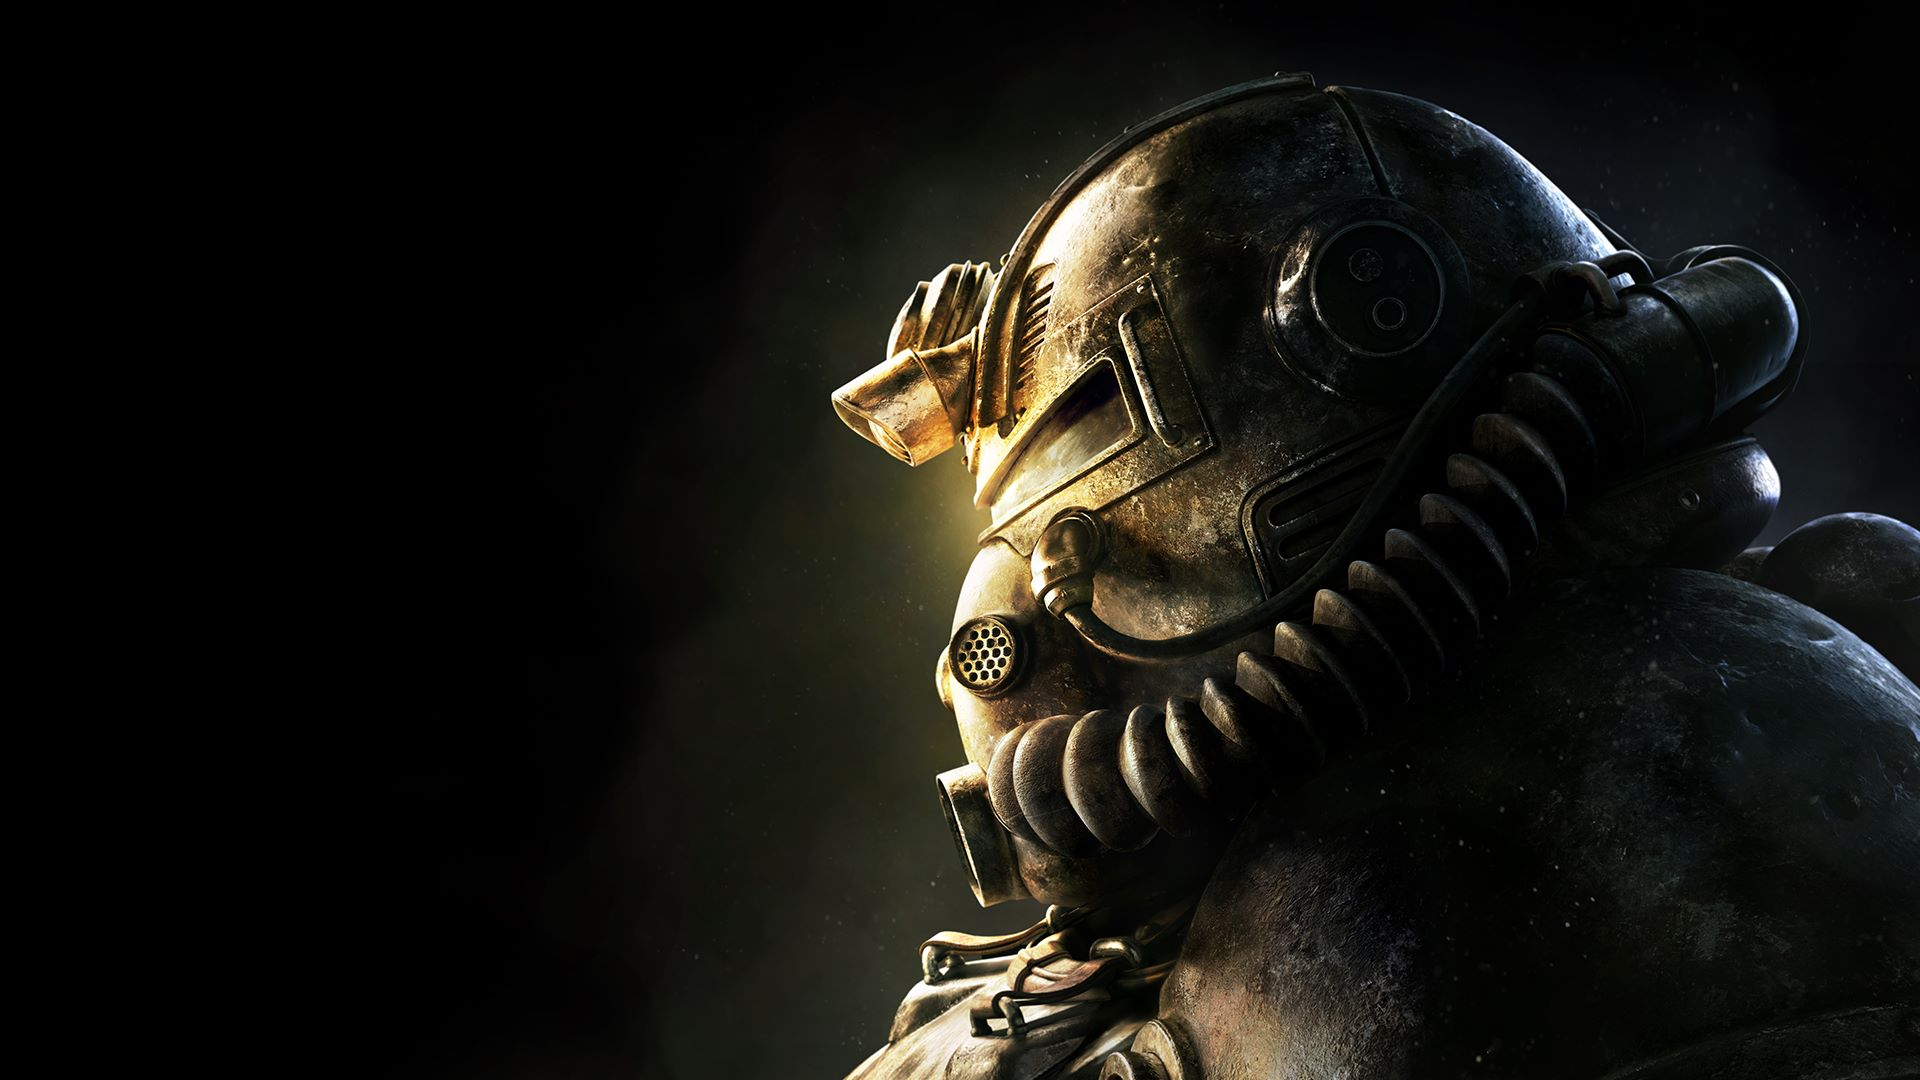 Fallout 76 doesn't mark Bethesda departure from single-player games